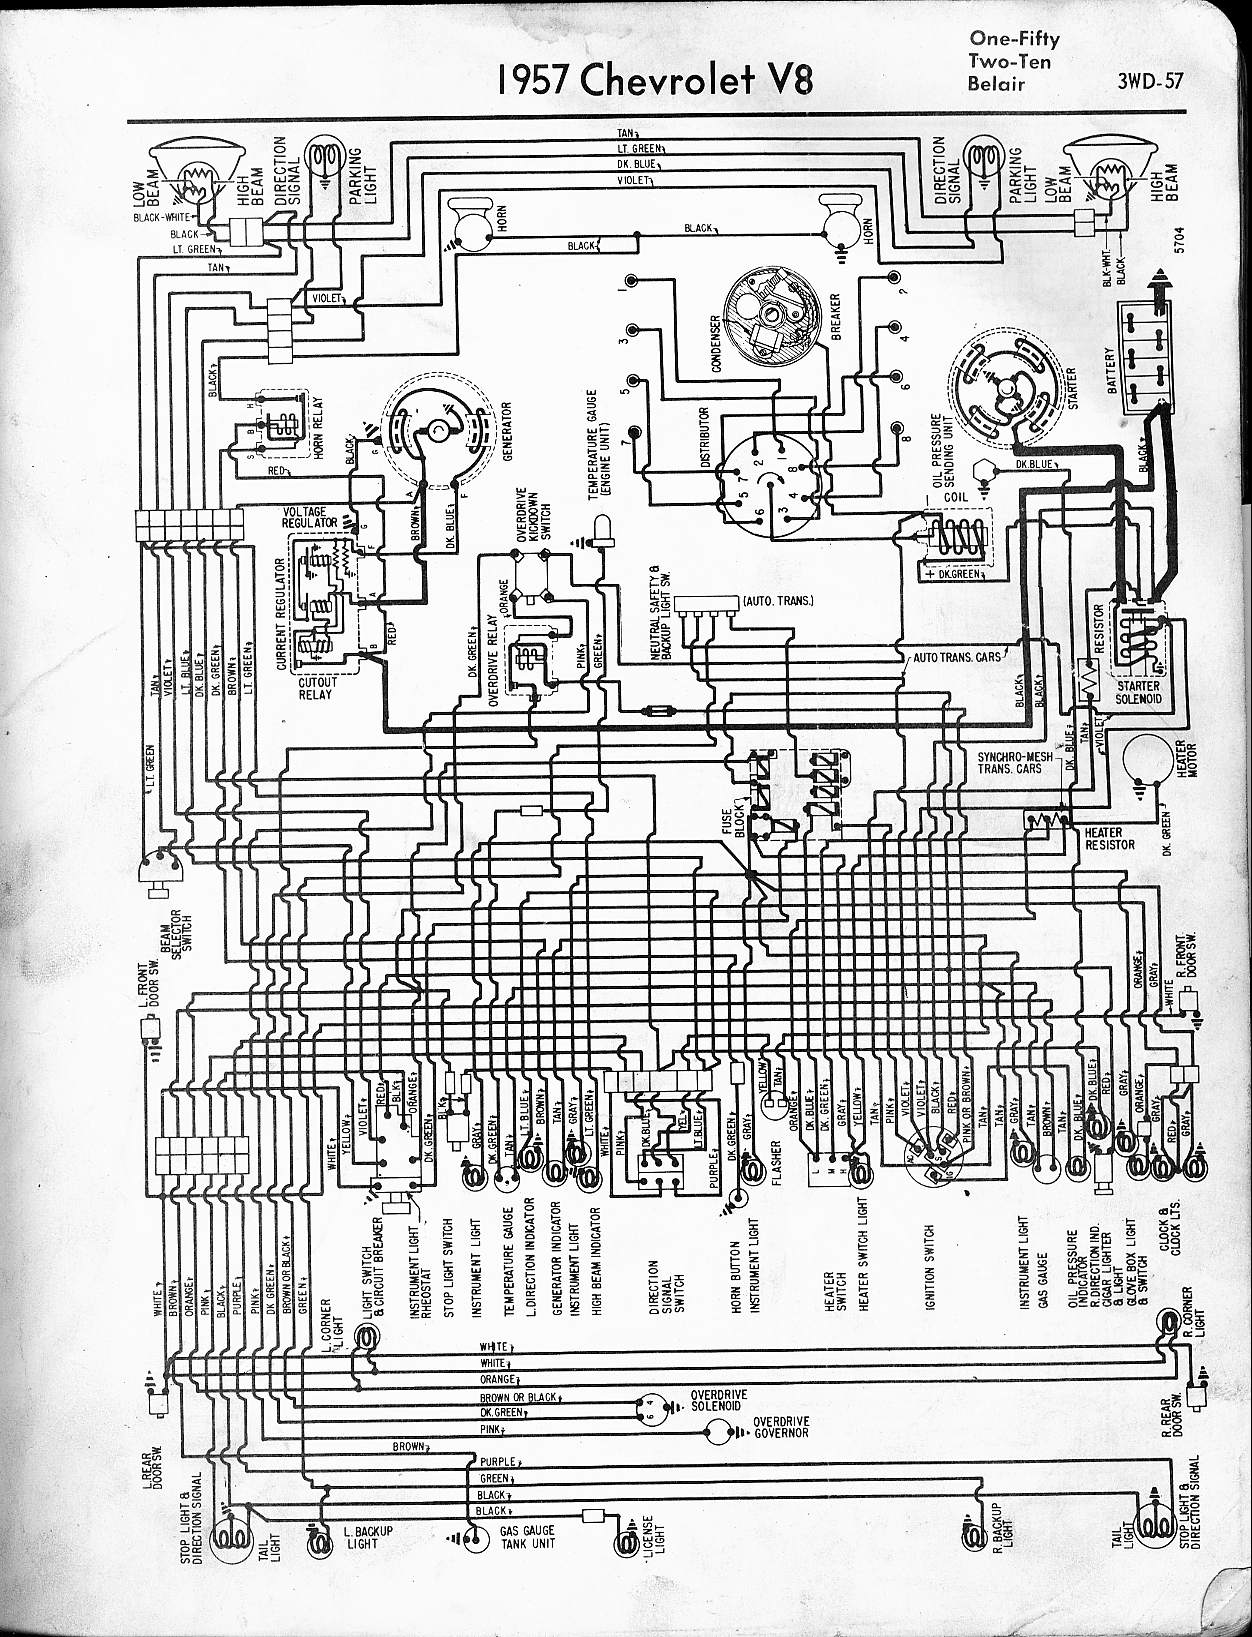 1951 vw bug wiring harness painless wiring diagram1951 vw bug wiring  harness painless wiring diagram1951 vw